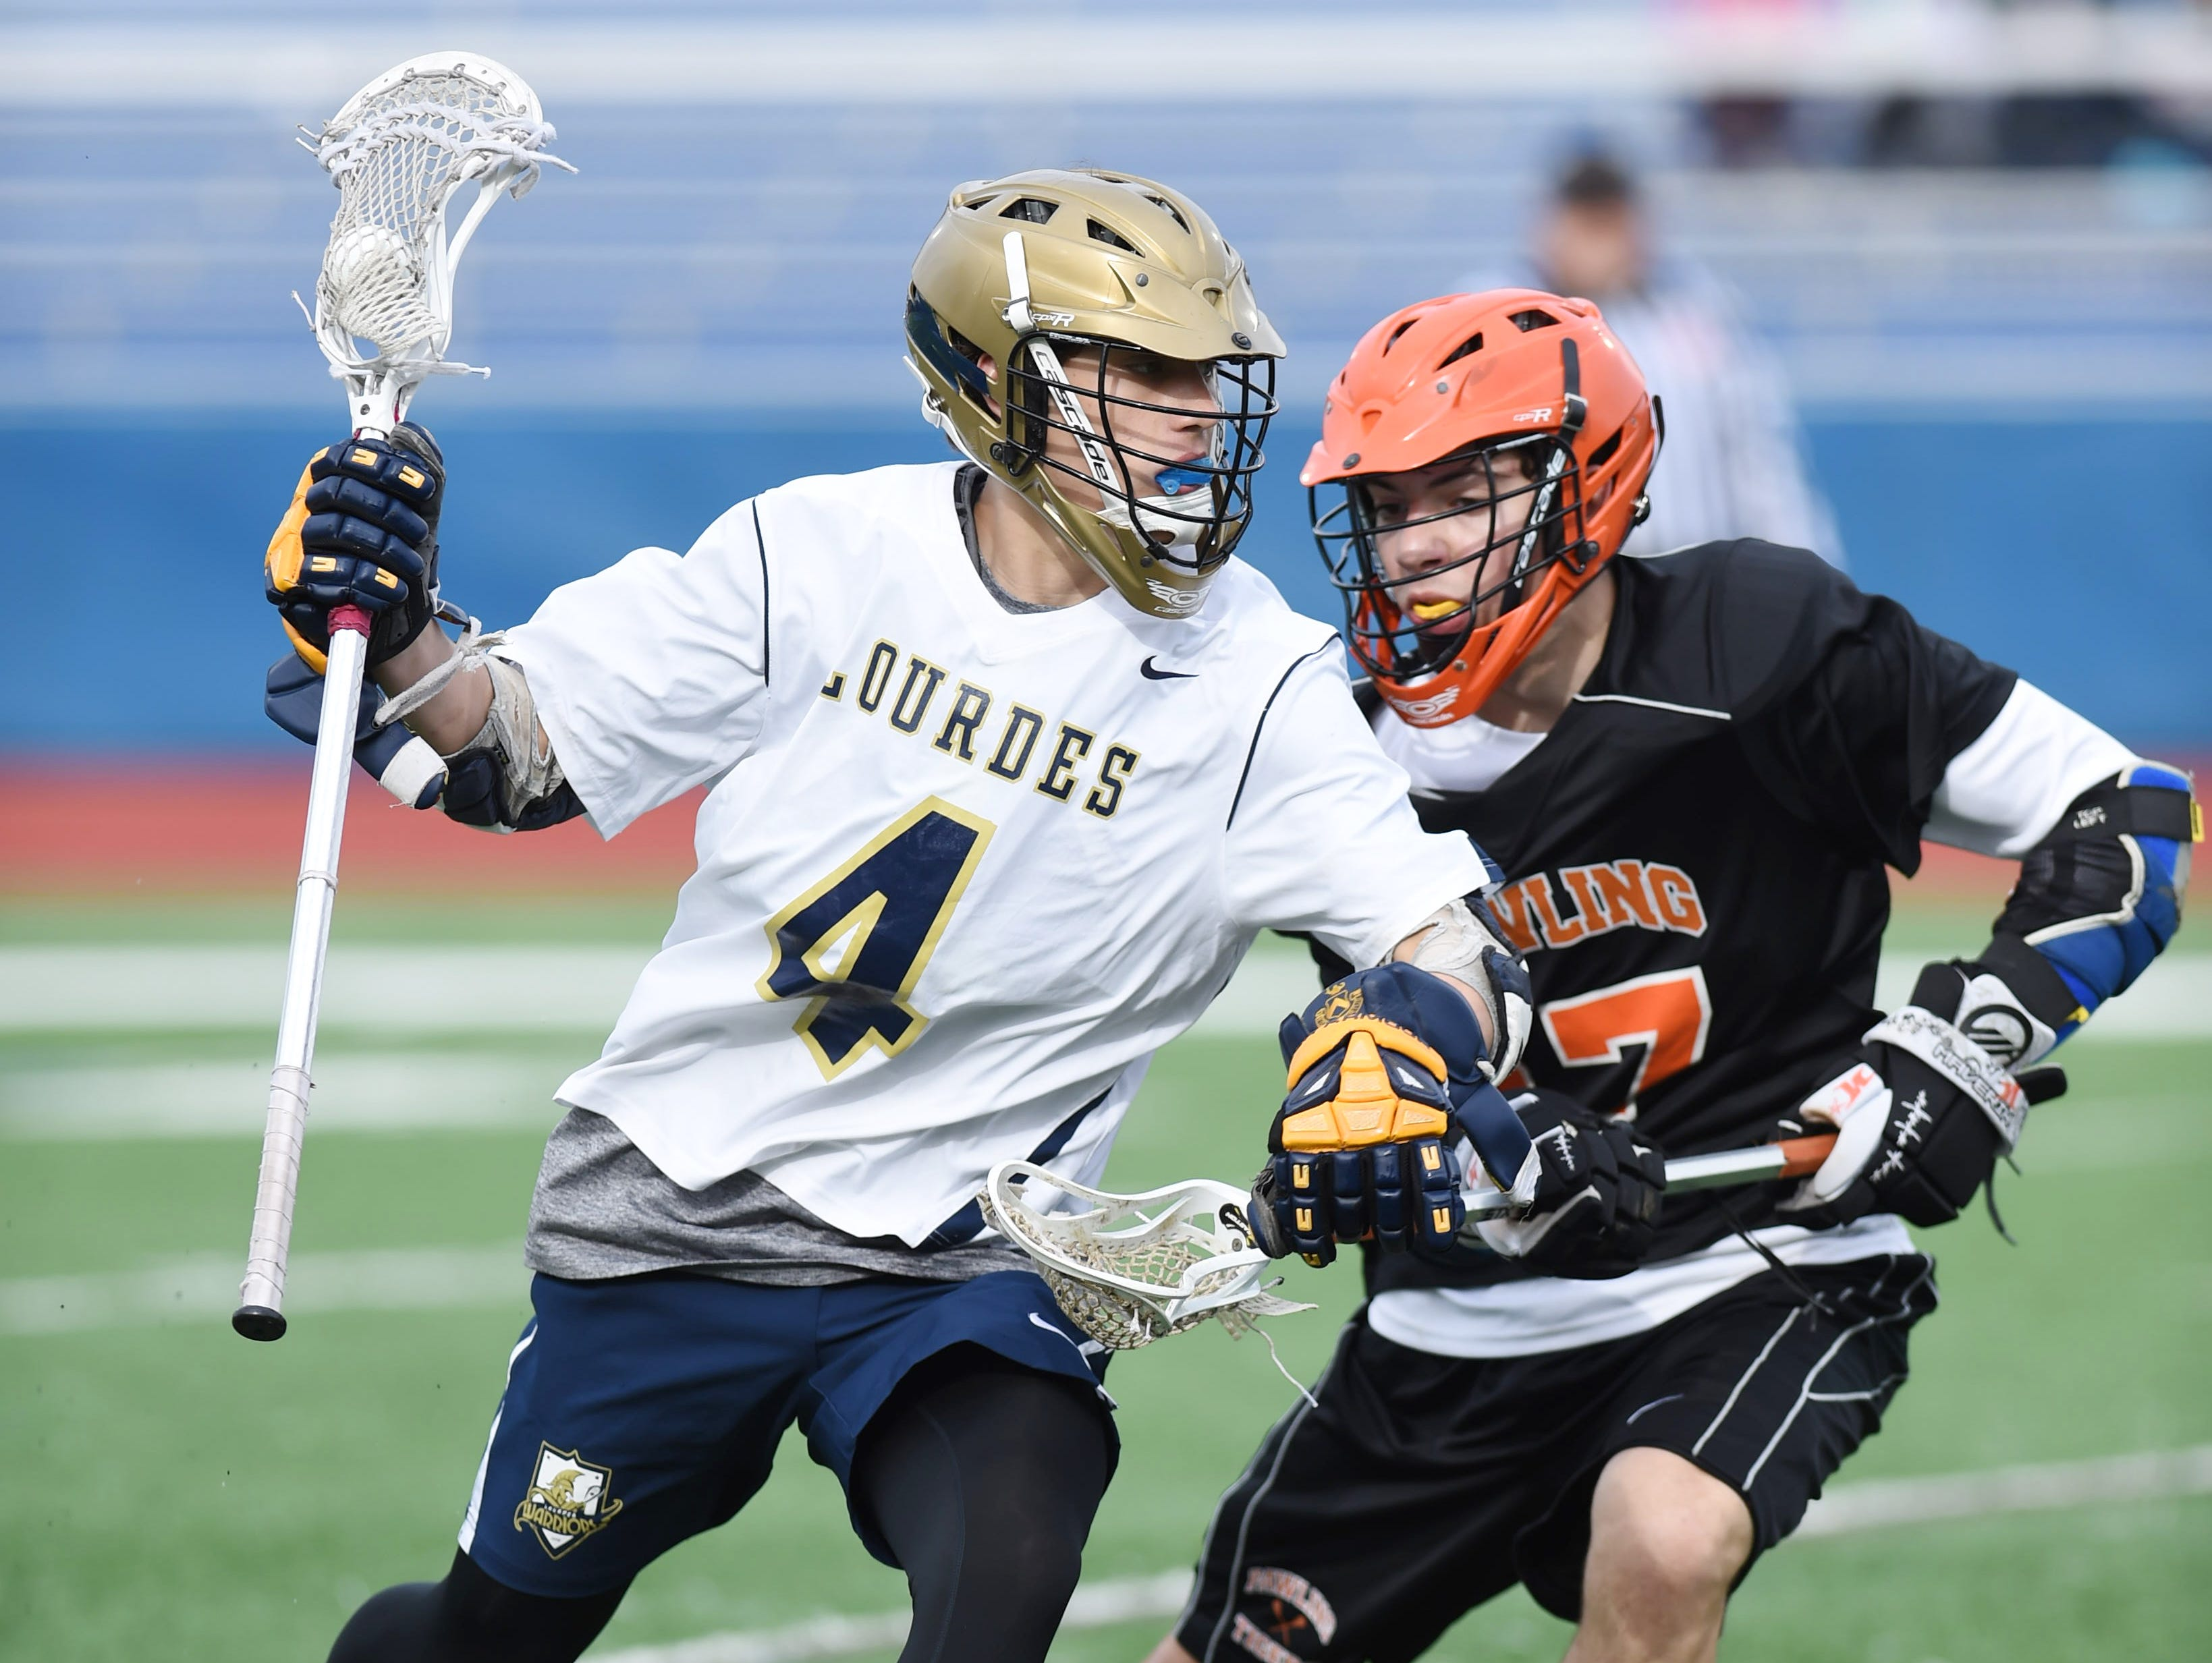 Lourdes' Trevor Arnone fights to get past Pawling's Nick Merendino during Thursday's game at Lourdes.